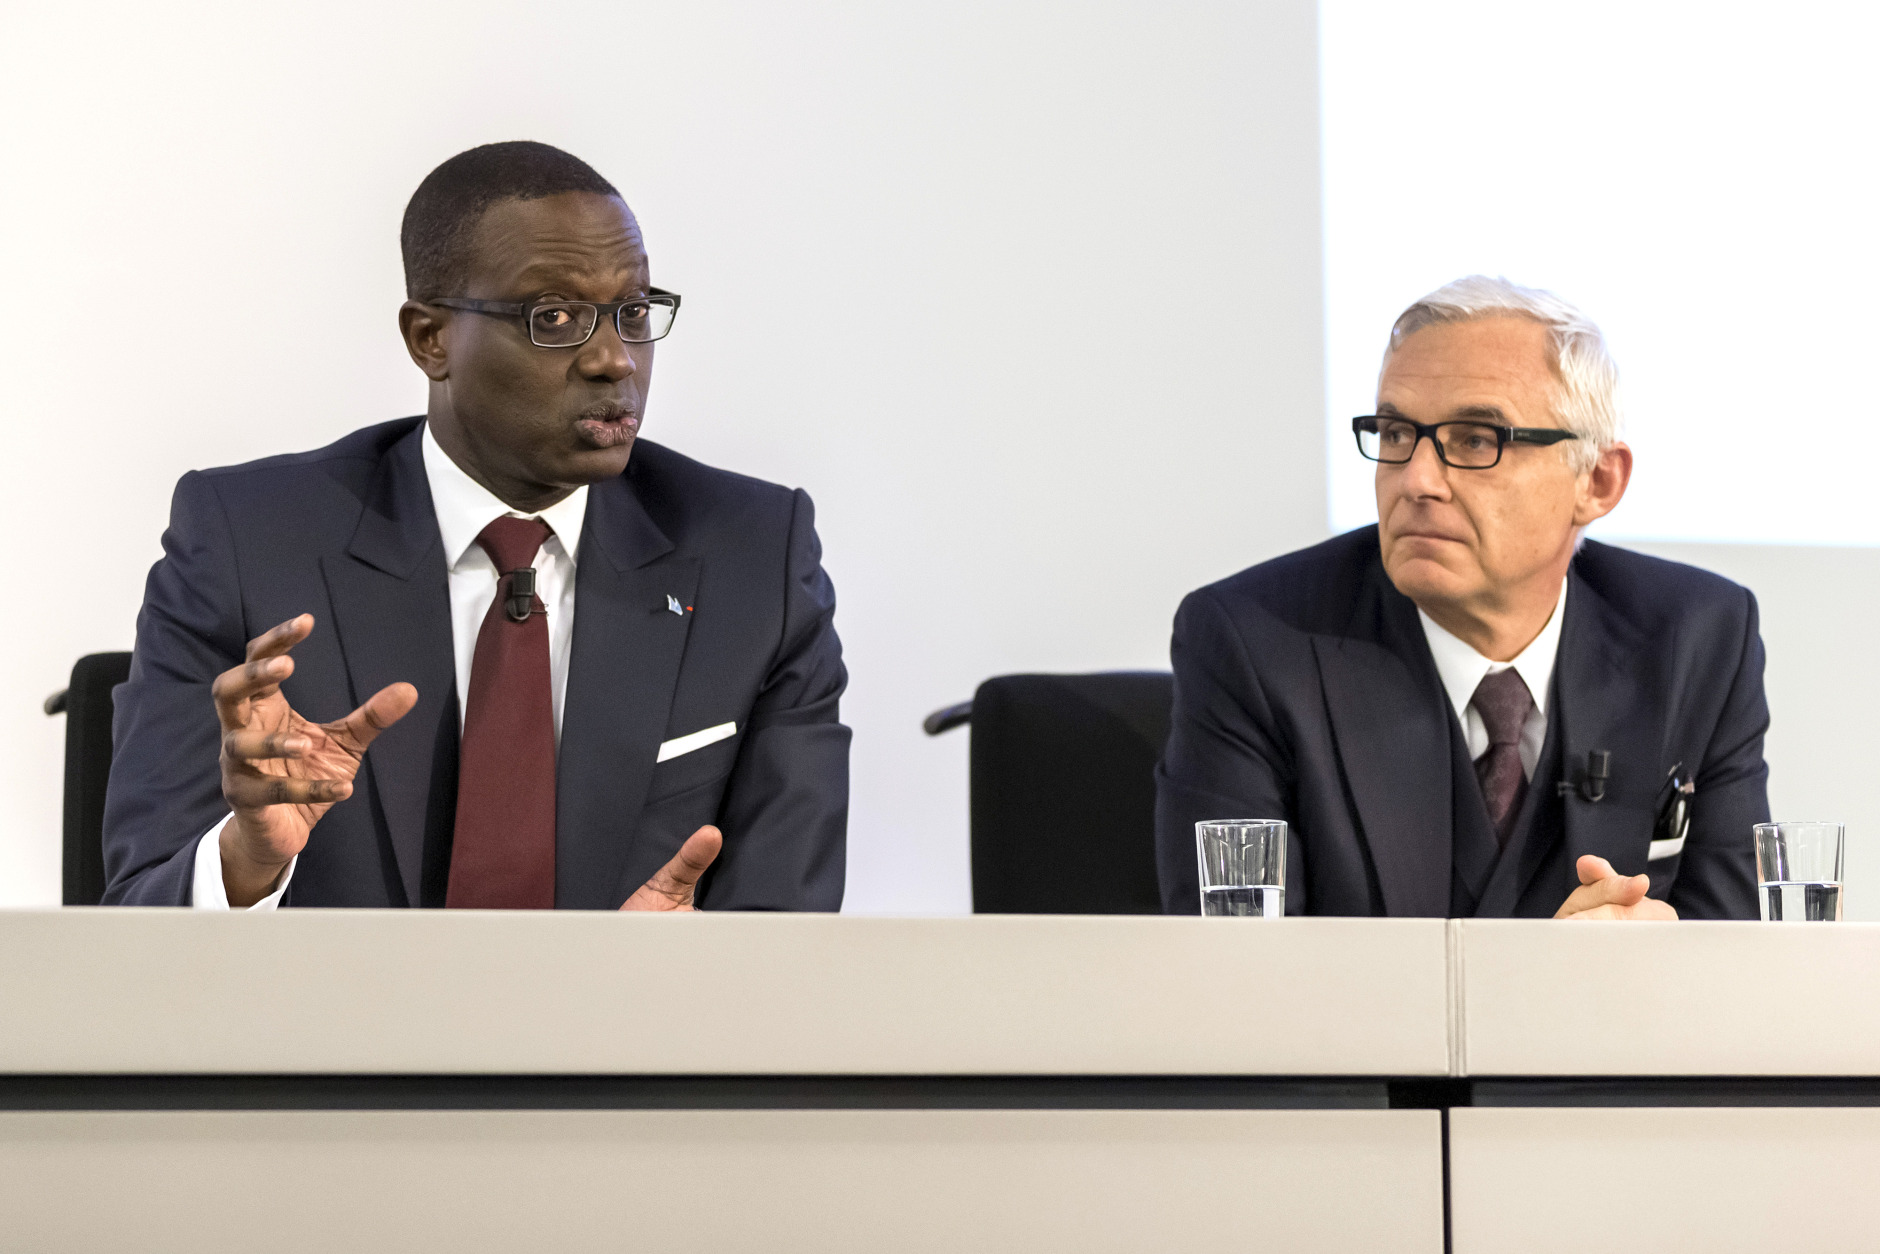 Credit Suisse Group AG Chief Executive Officer Tidjane Thiam Earnings News Conference & Interview